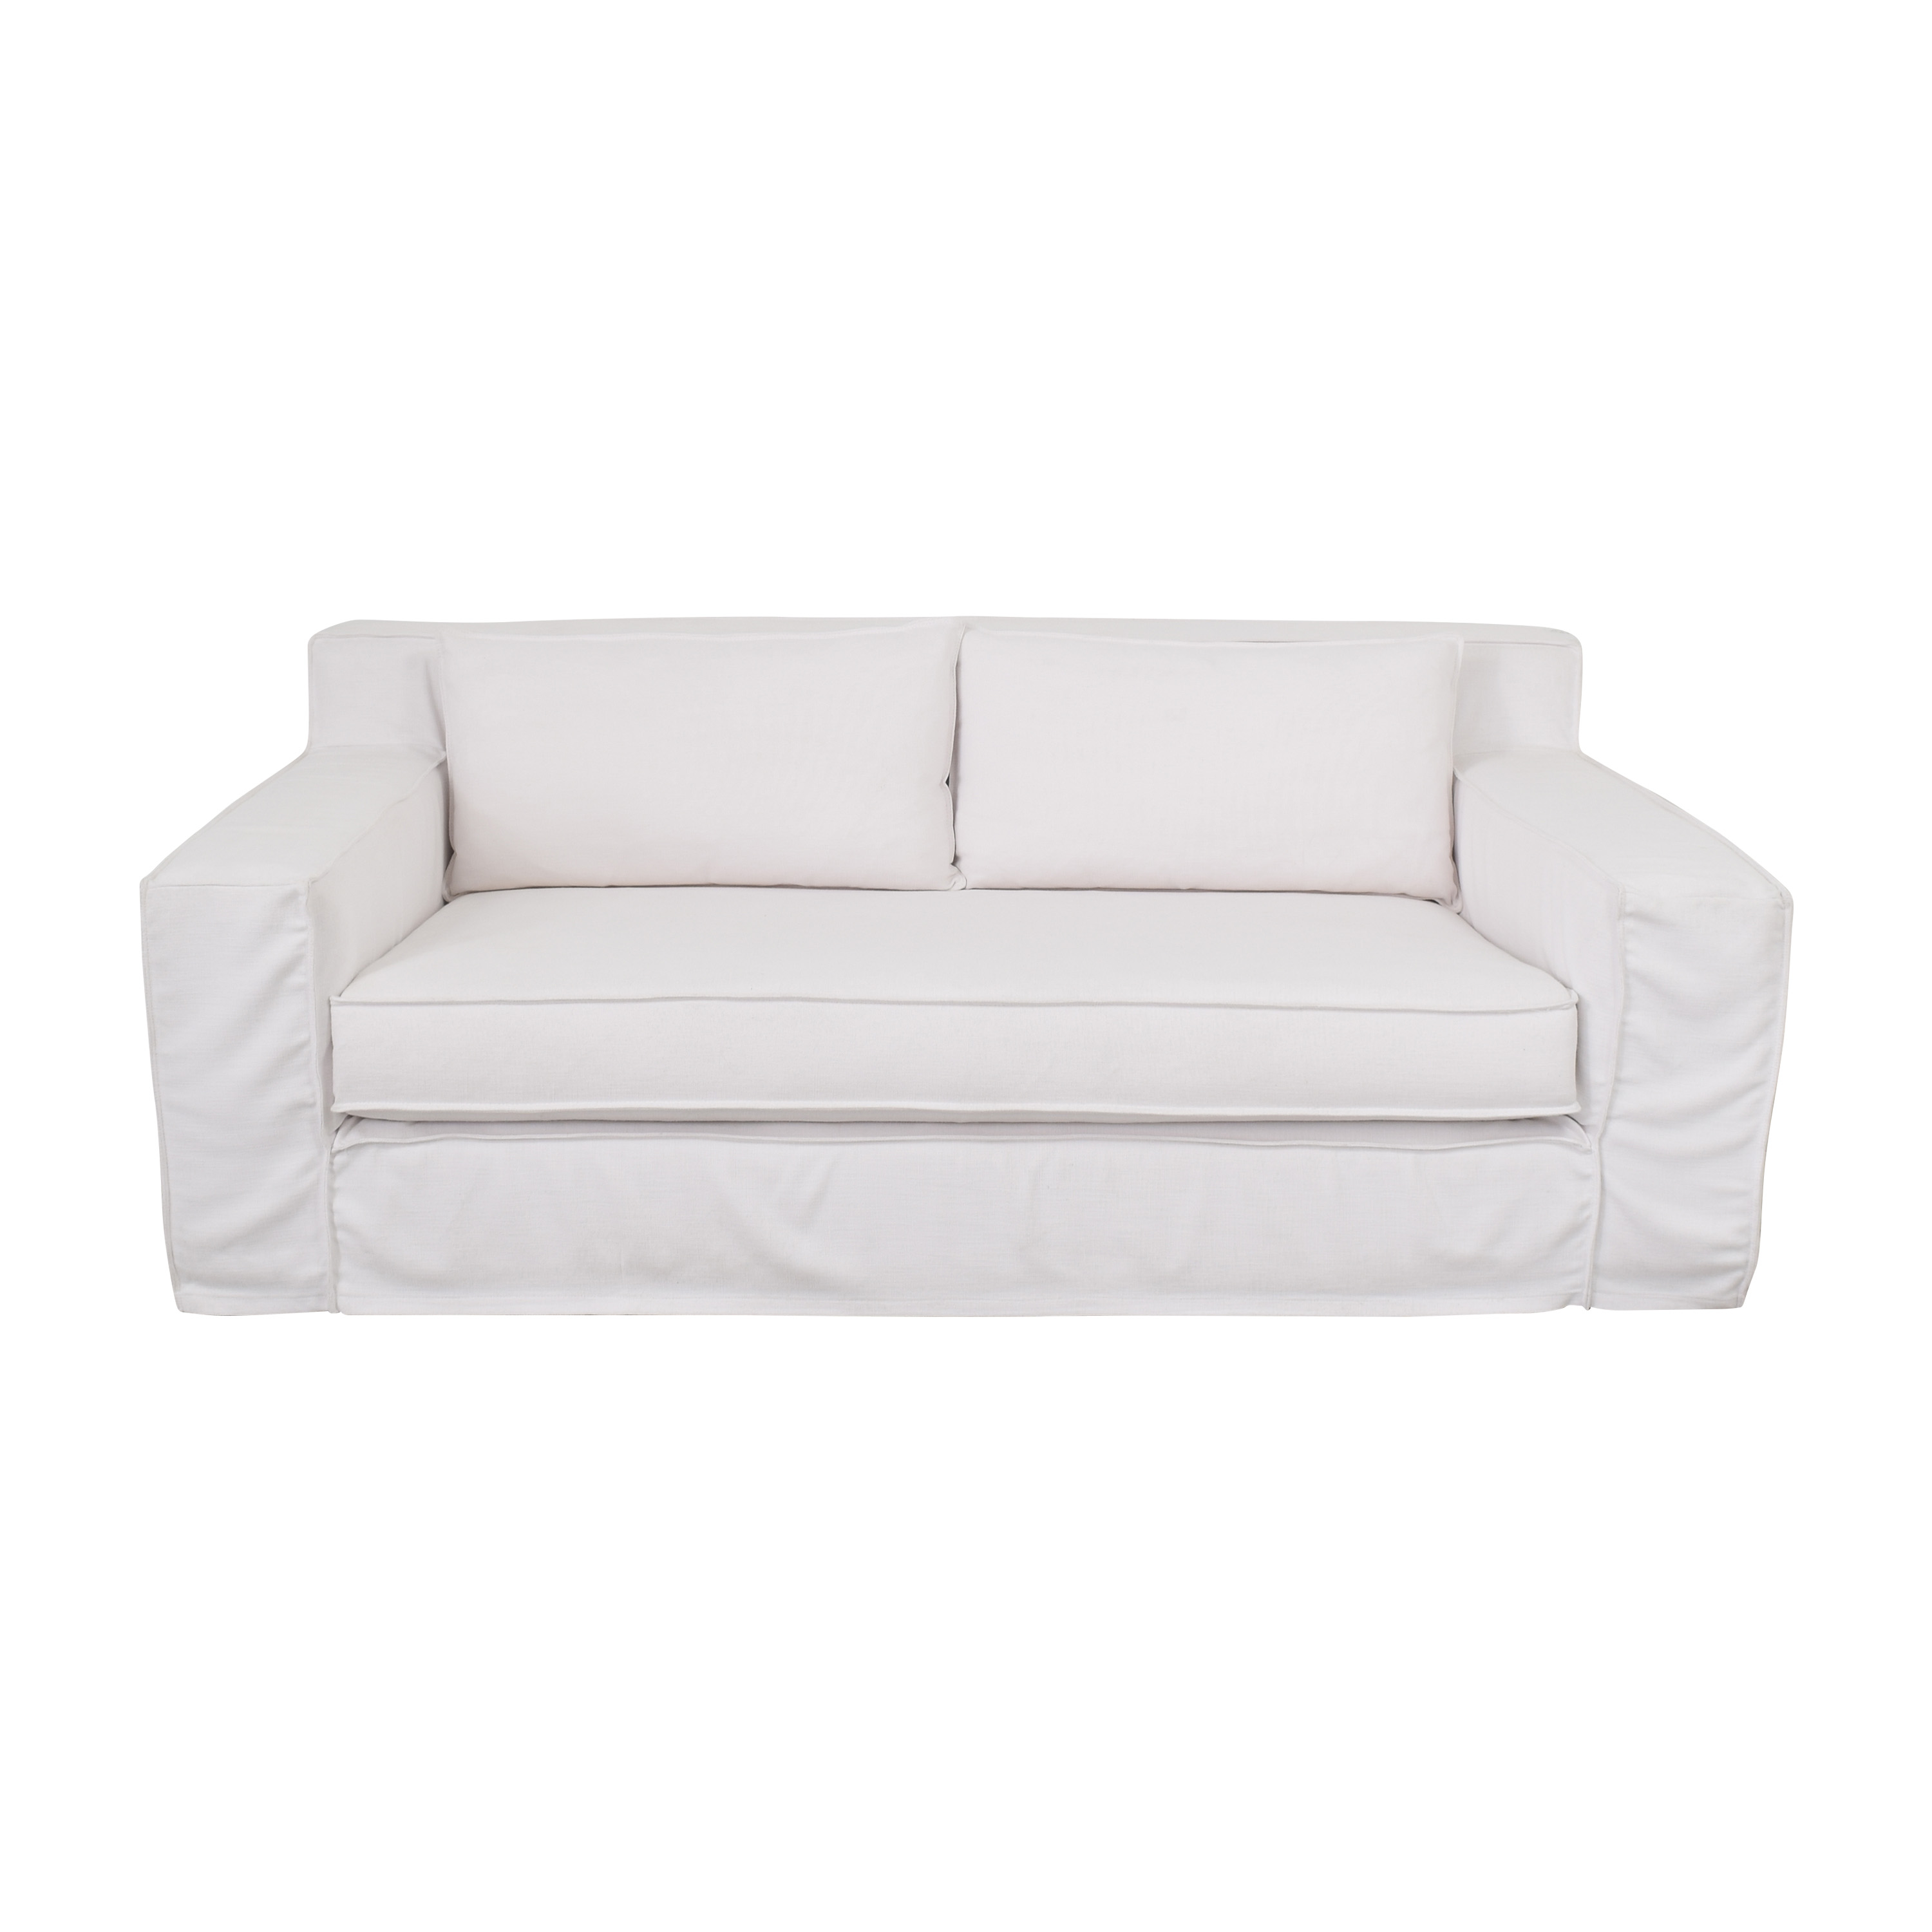 Restoration Hardware Restoration Hardware Capri Slipcovered Sofa price